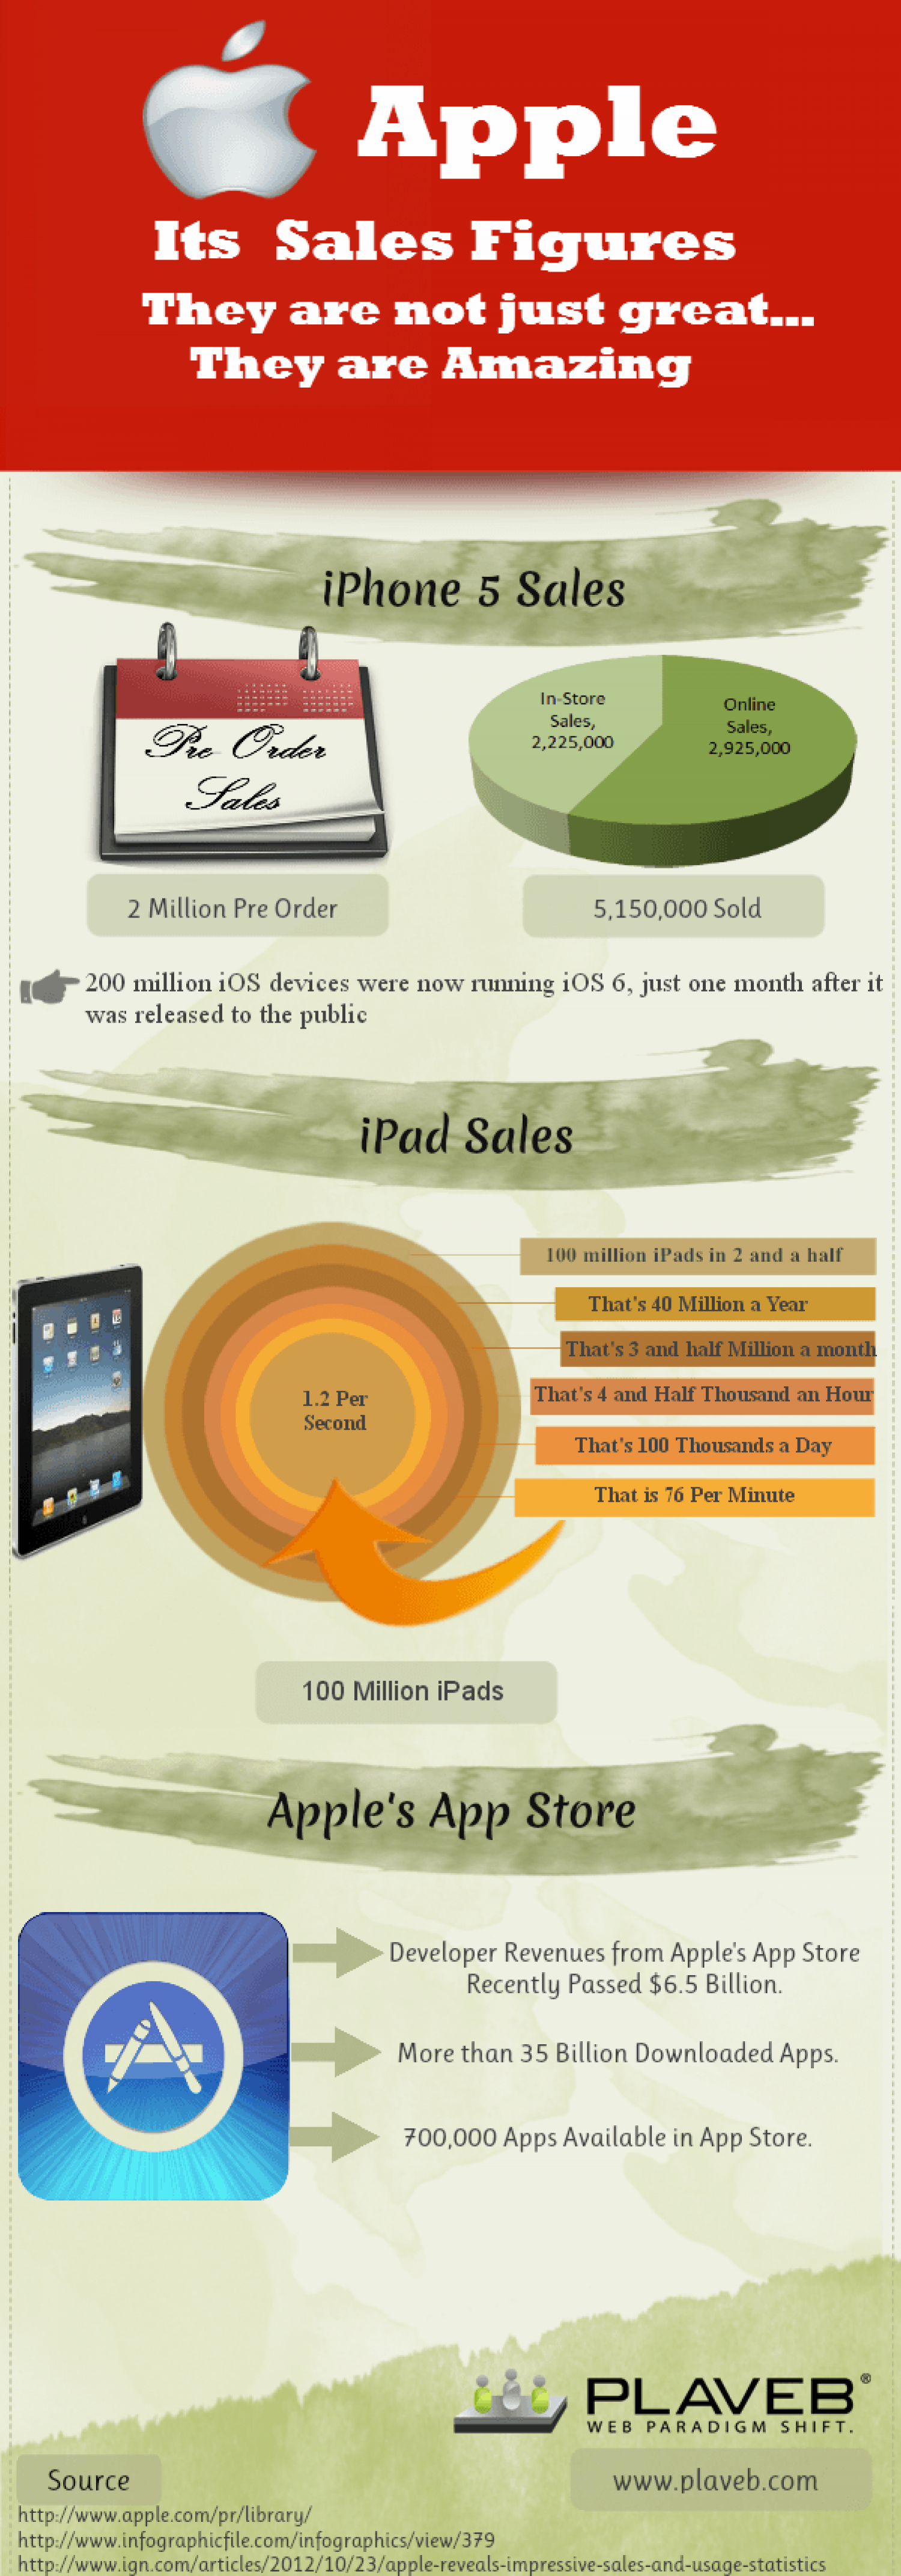 Apple and its Sales Figures - They are not just great… They are Amazing Infographic